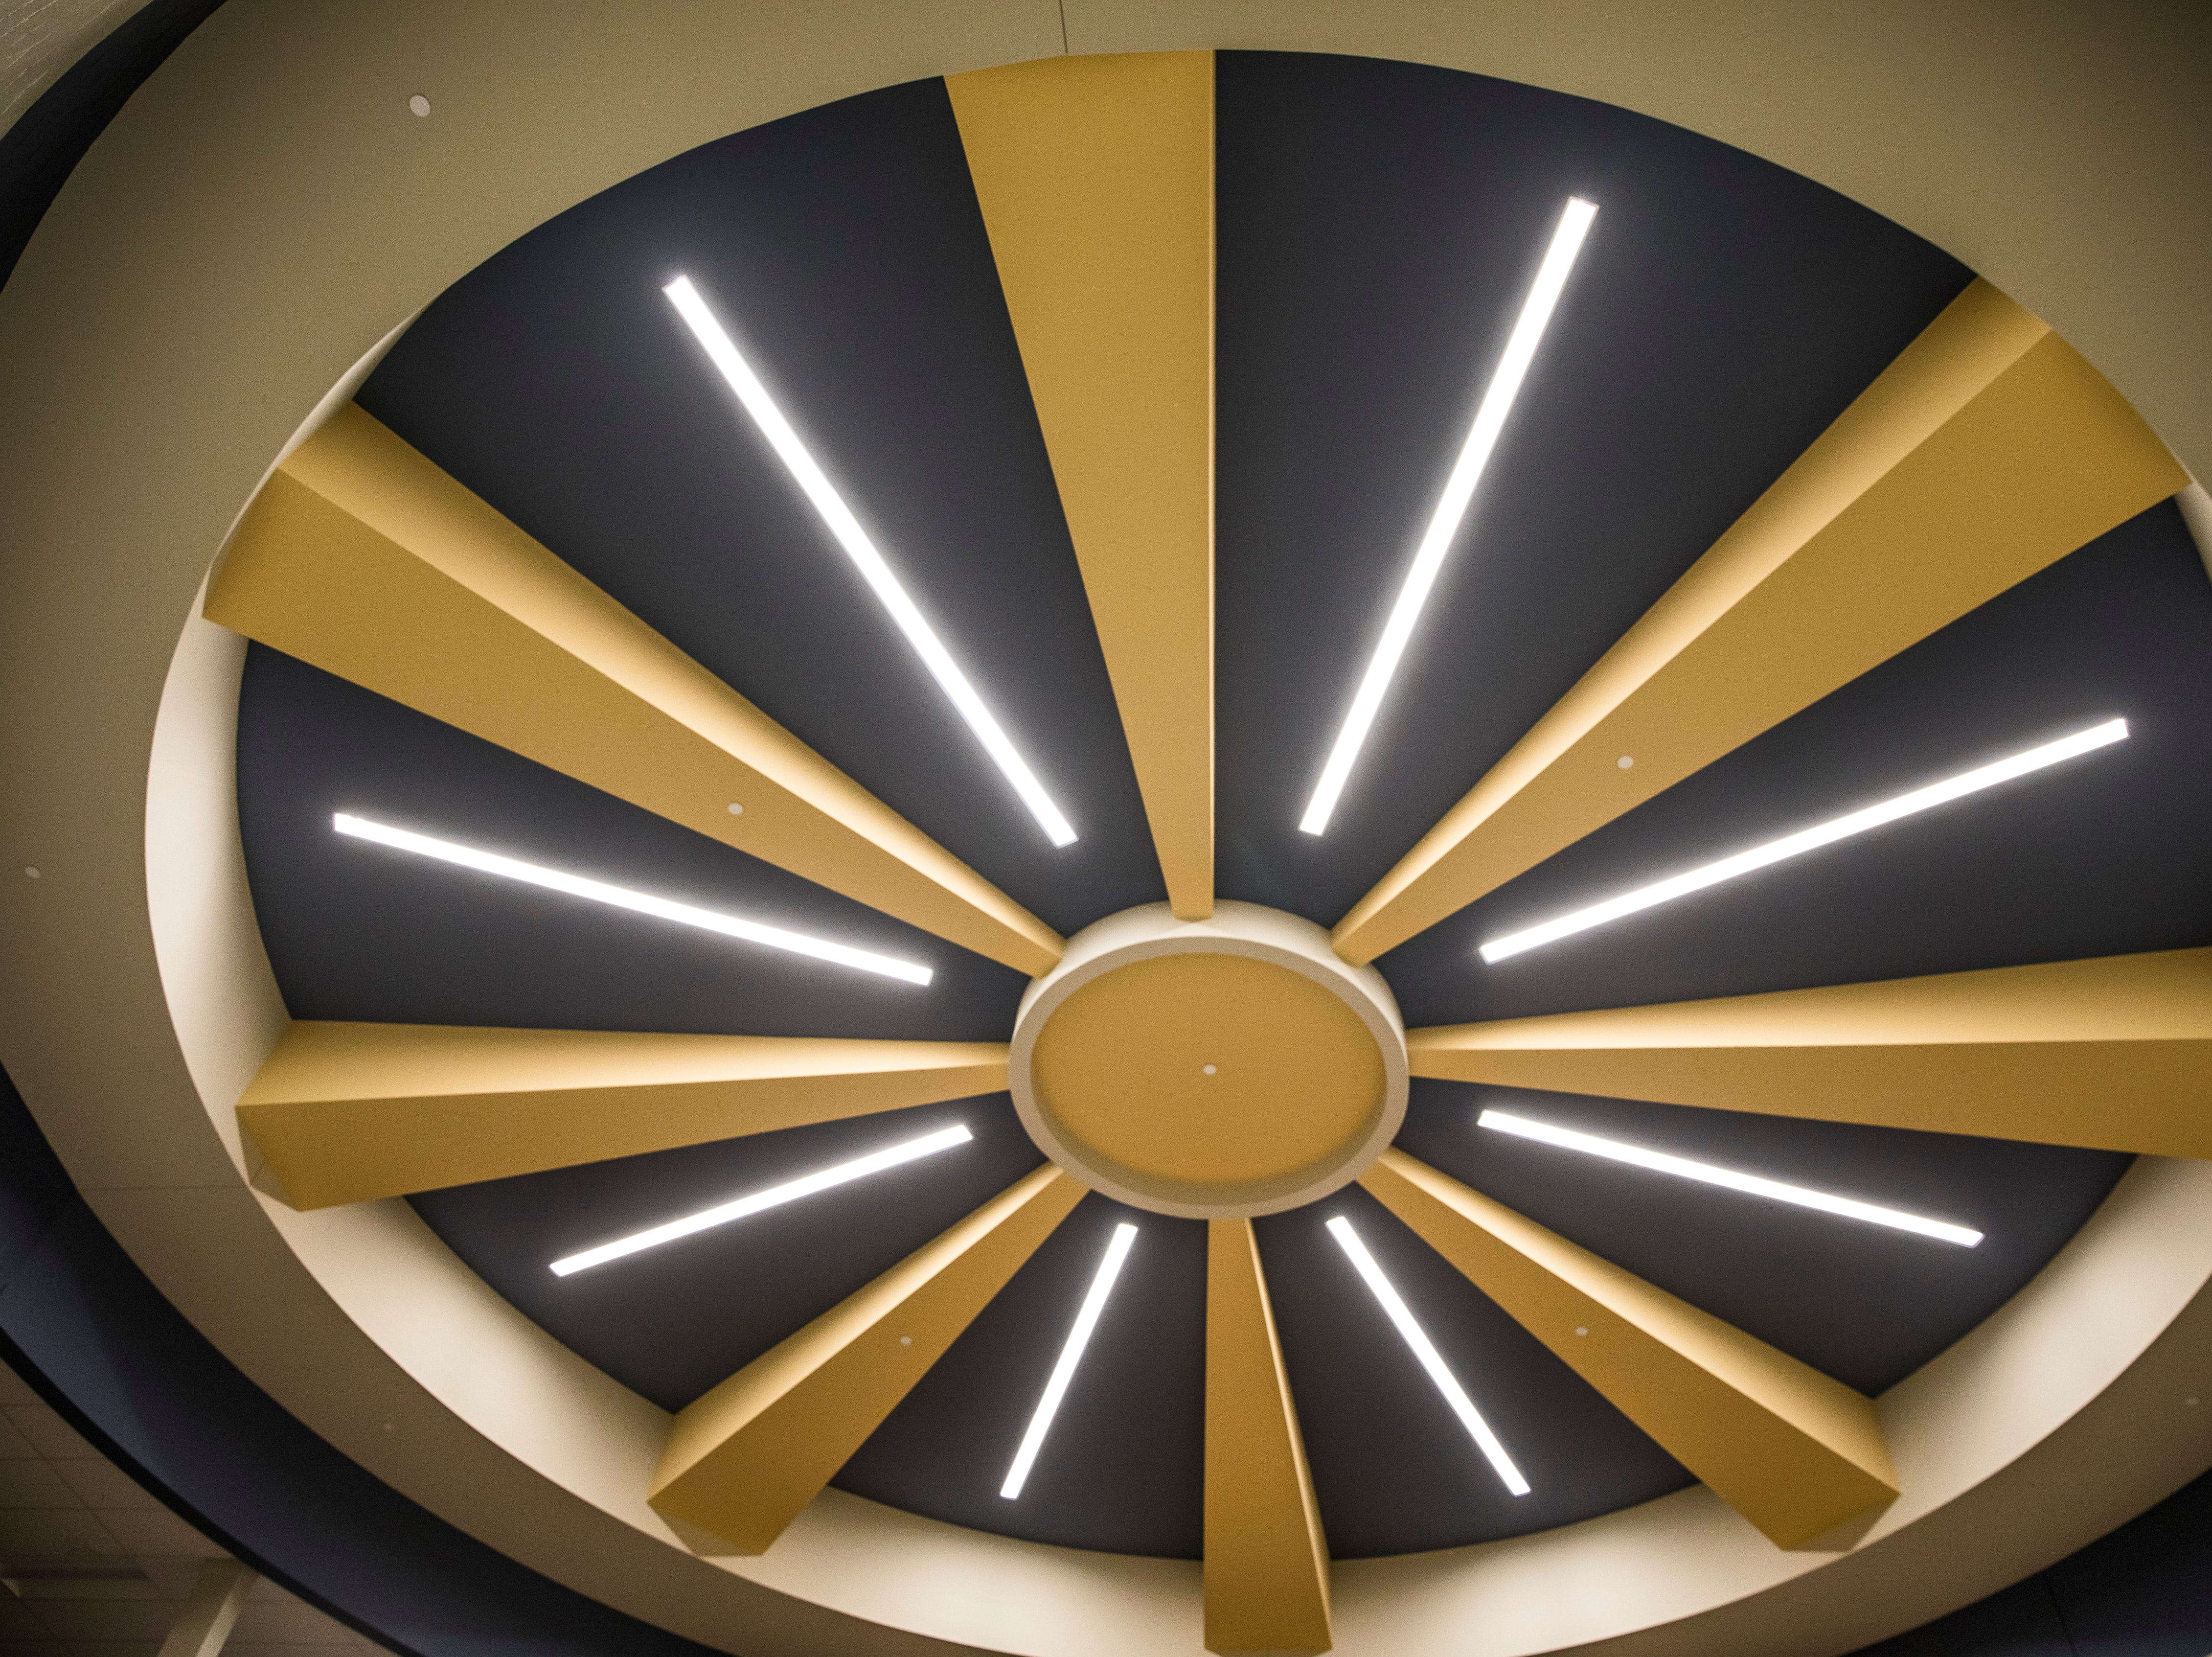 One of the biggest 'Wow!' factor moments in the building comes from looking up at the ceiling of the rotunda and seeing this interpretation of the rays of sunlight from the Great Seal of Ohio.